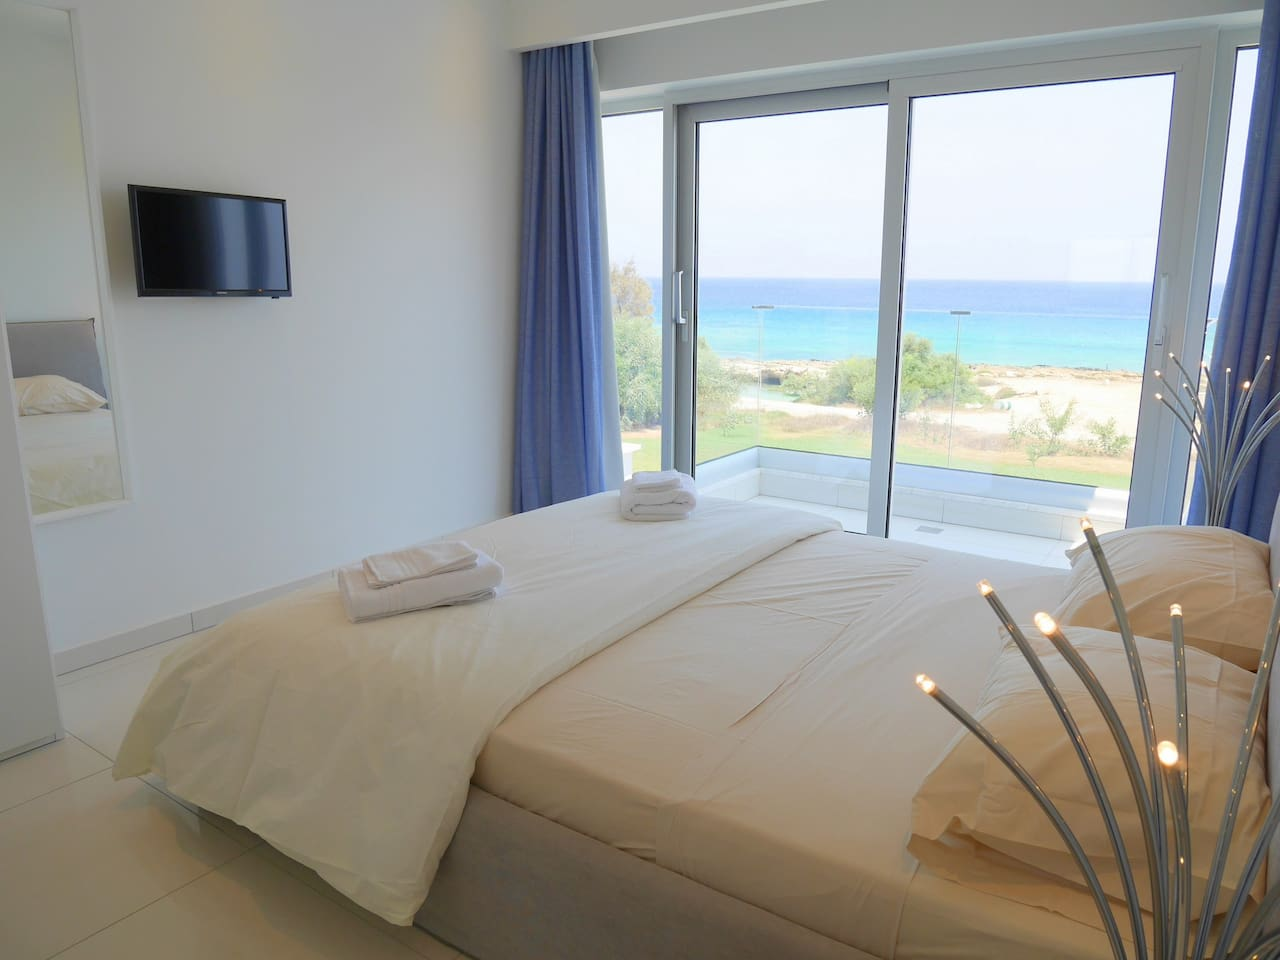 Apartment 2 Bed Luxury Apt with Large Communal Pool - B2-101 photo 19116078